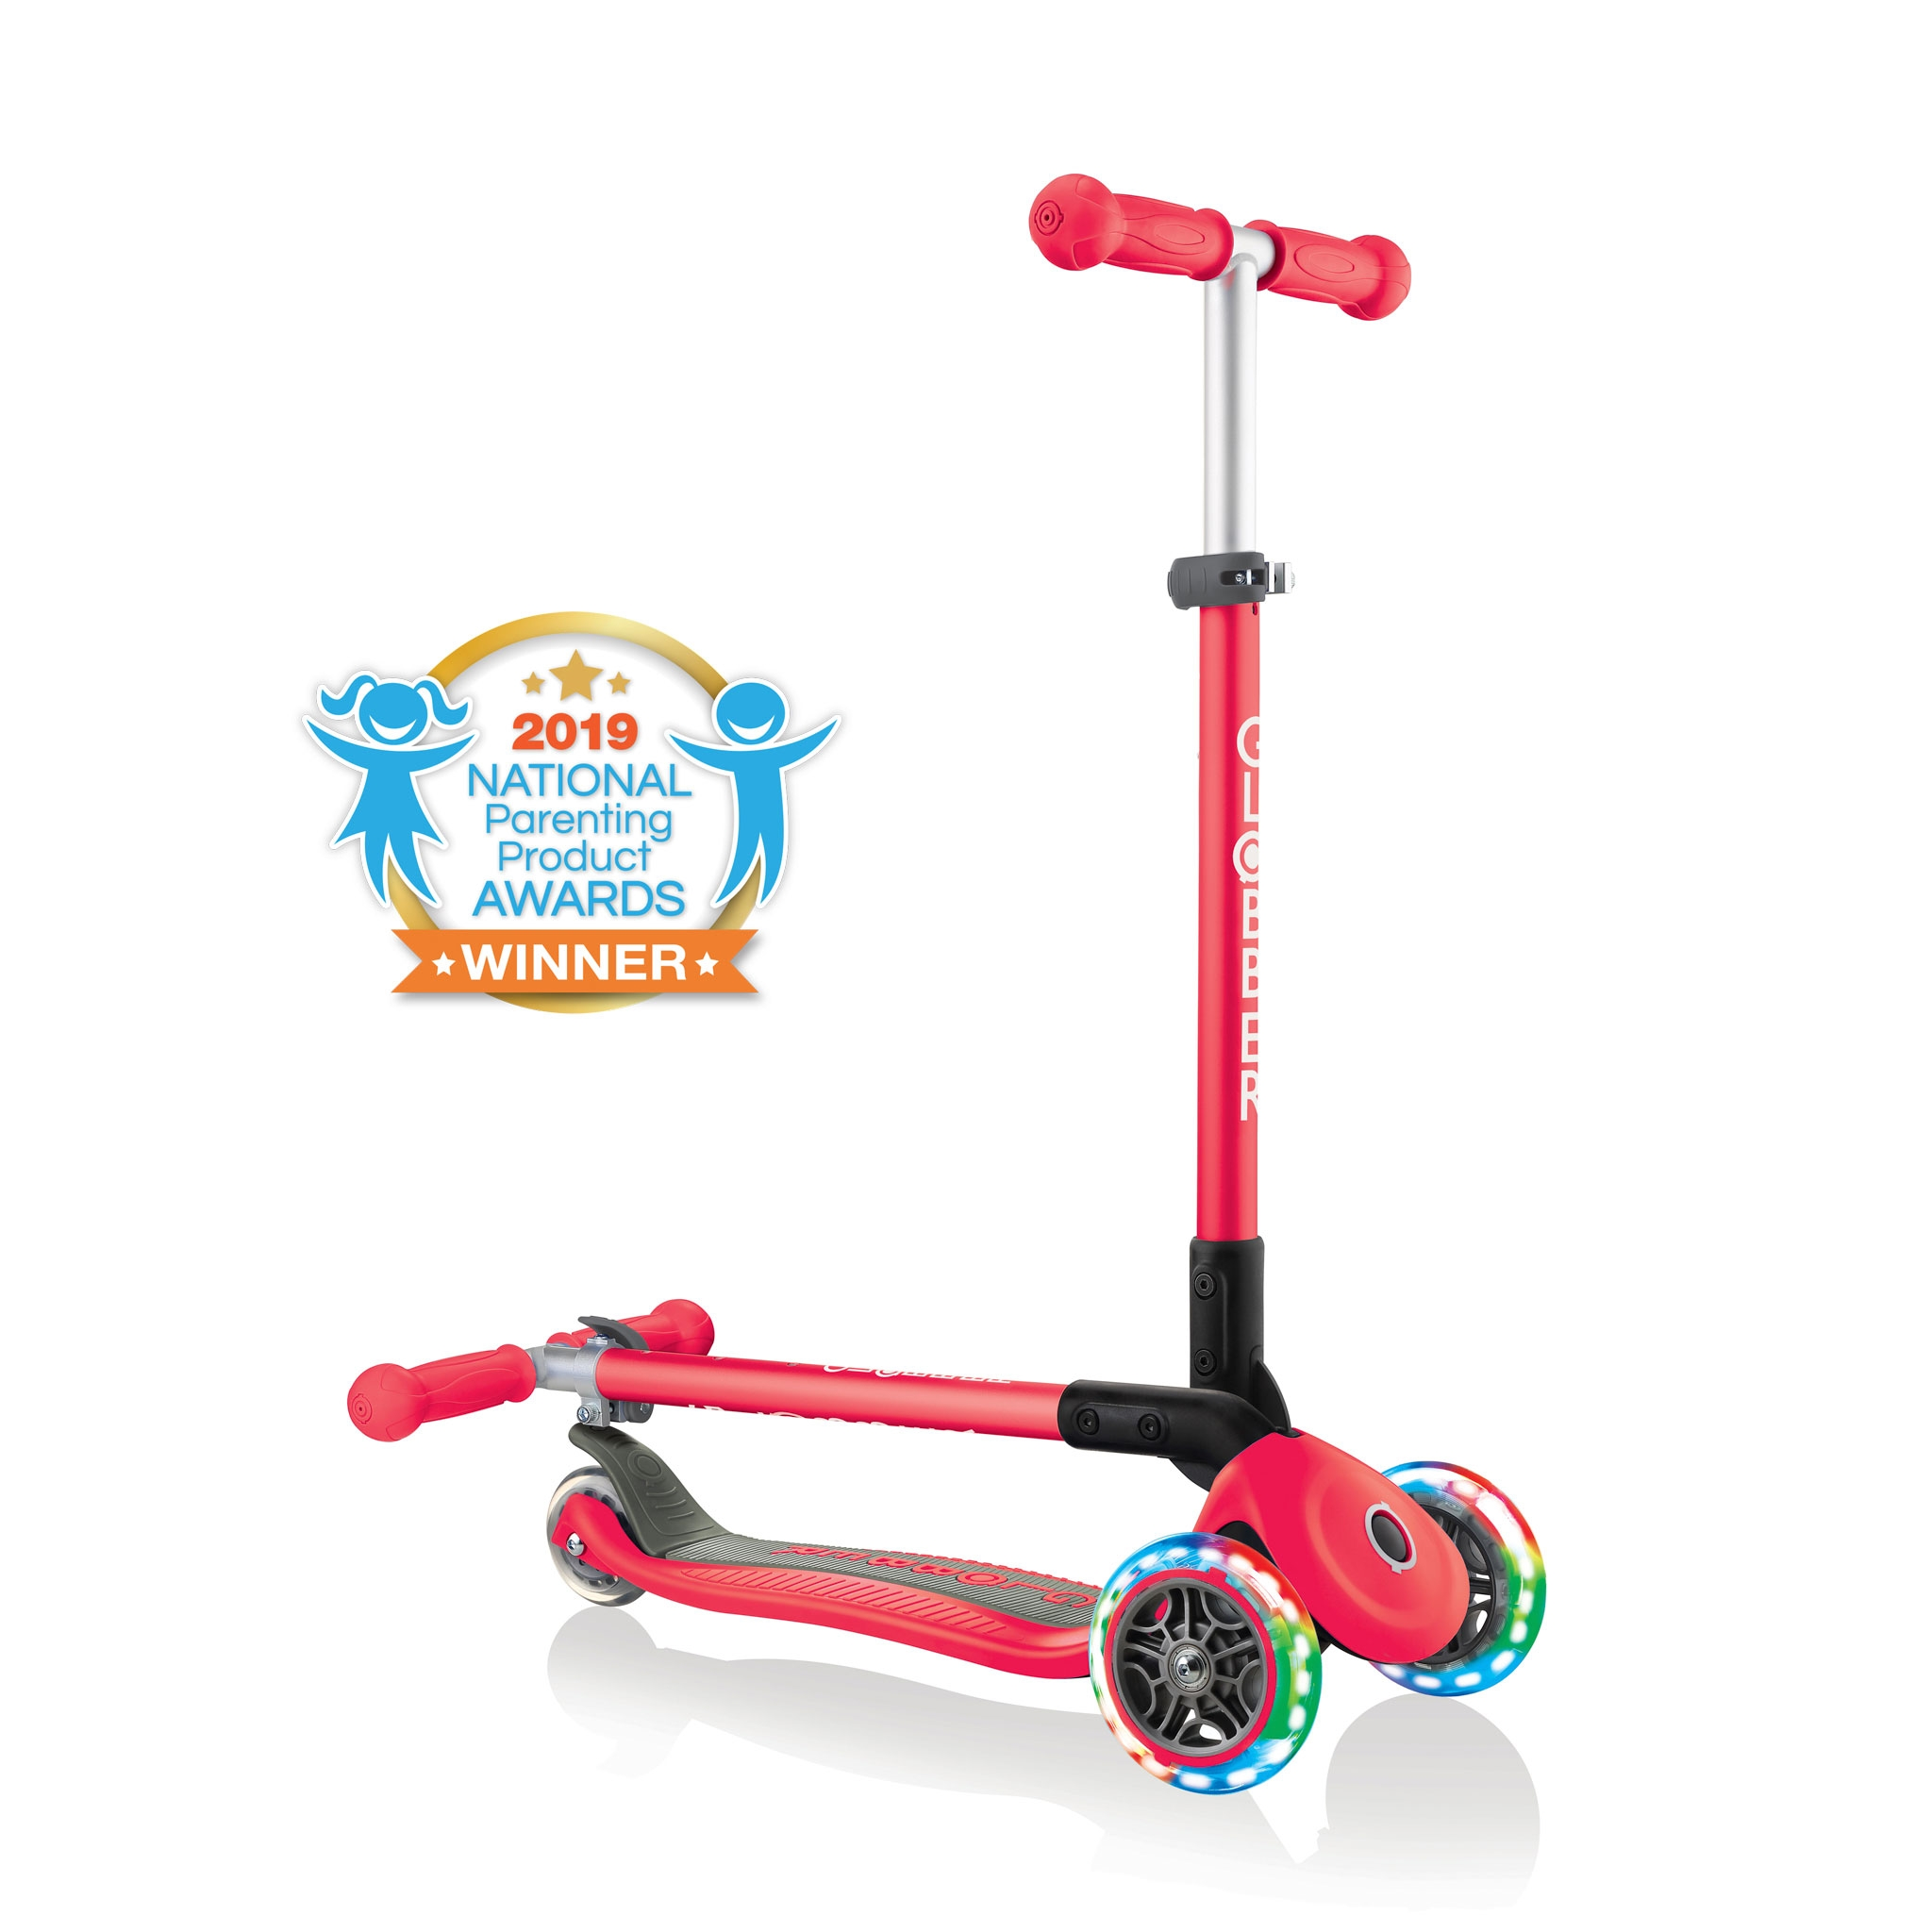 PRIMO-FOLDABLE-LIGHTS-3-wheel-fold-up-scooter-for-kids-new-red2 0